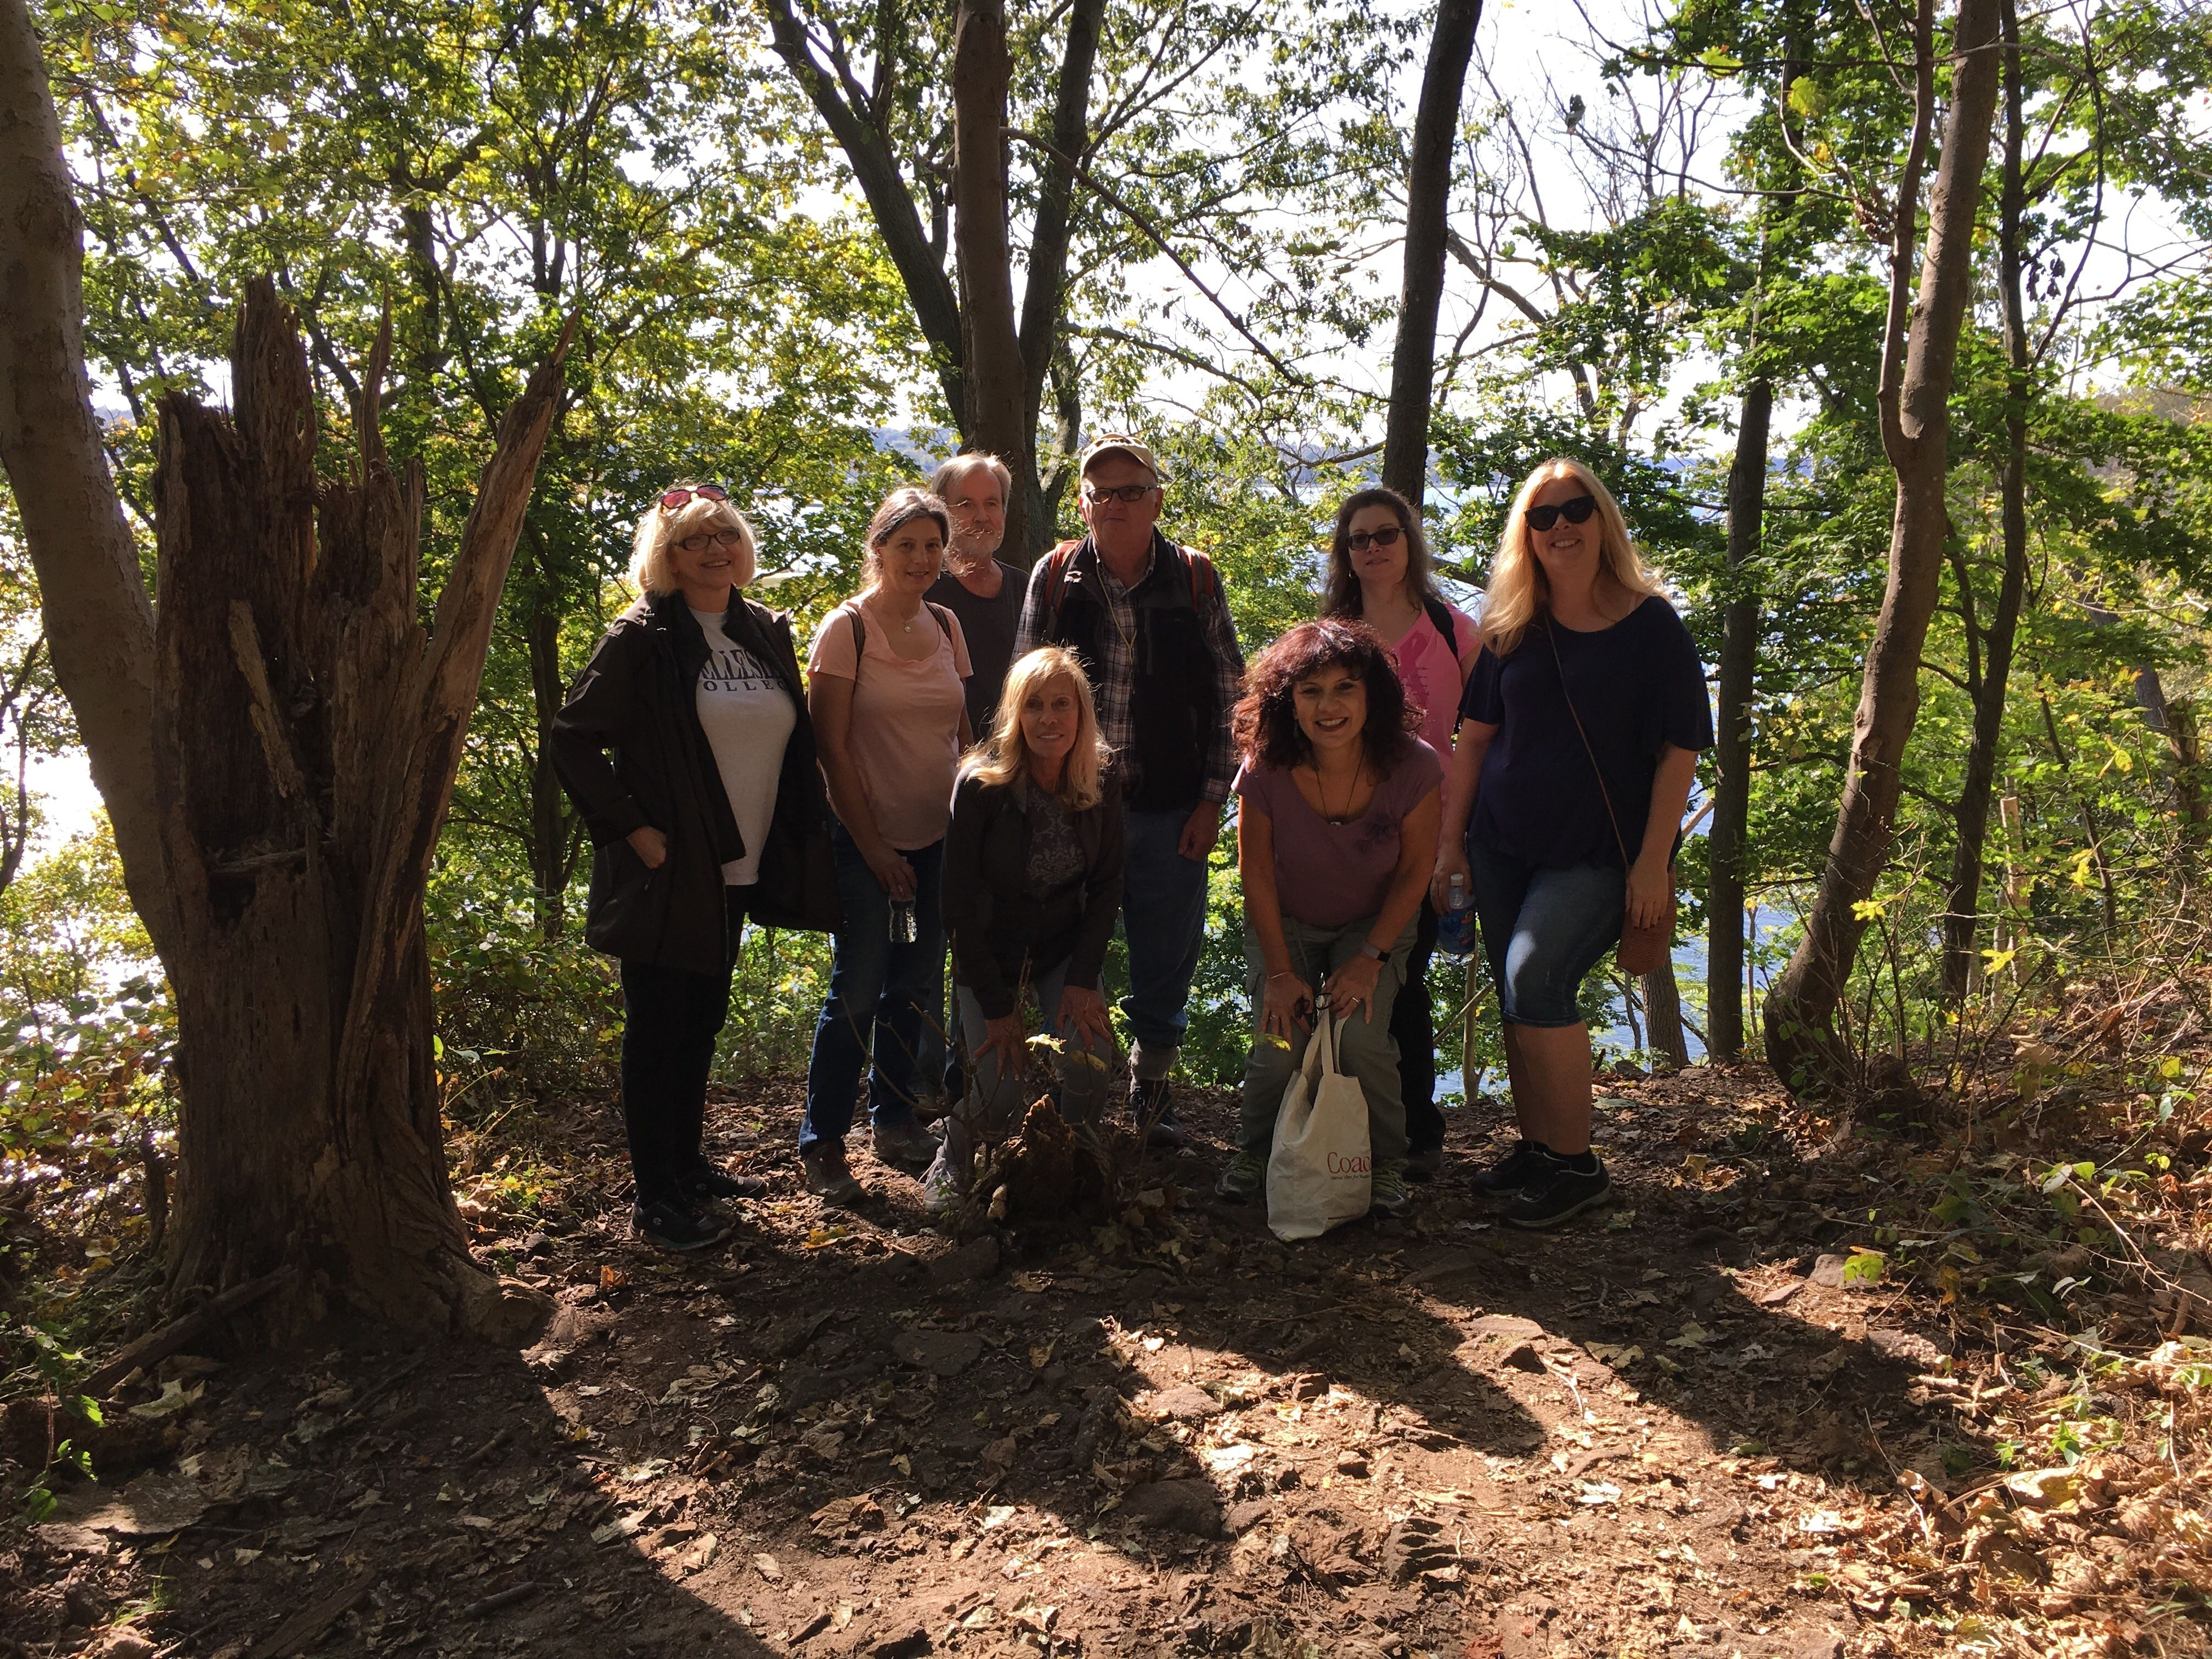 singles in hartshorne Let's do 6-7 miles of hill hiking in hartshorne woods we will meet at the rocky point parking area just before 9am, saturday, march 31 please try to come 5-10 mins early, so we can start hiking clos.